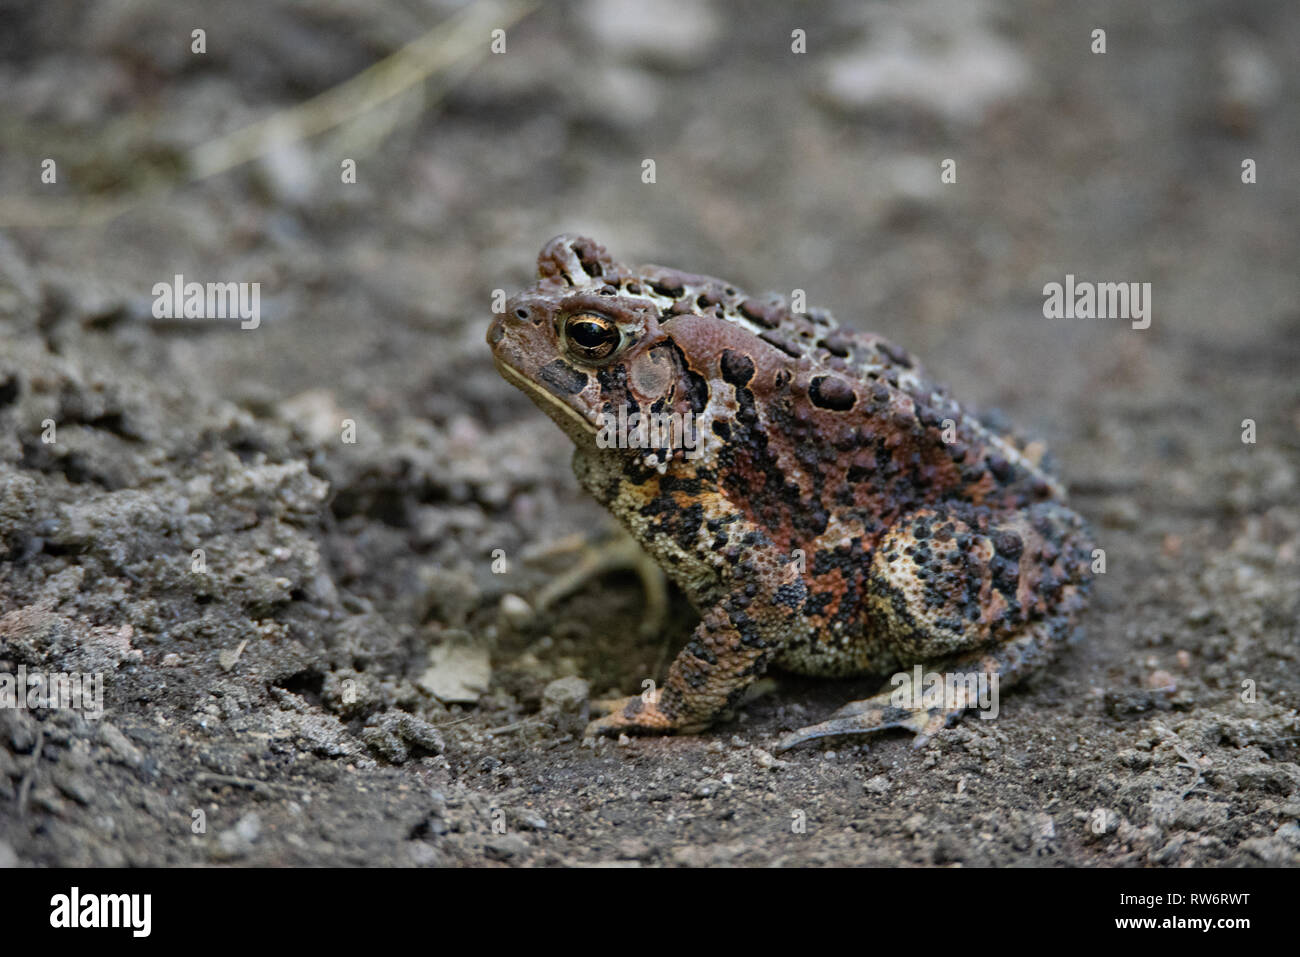 American Toad (Anaxyrus americanus) basking in the mud - Stock Image